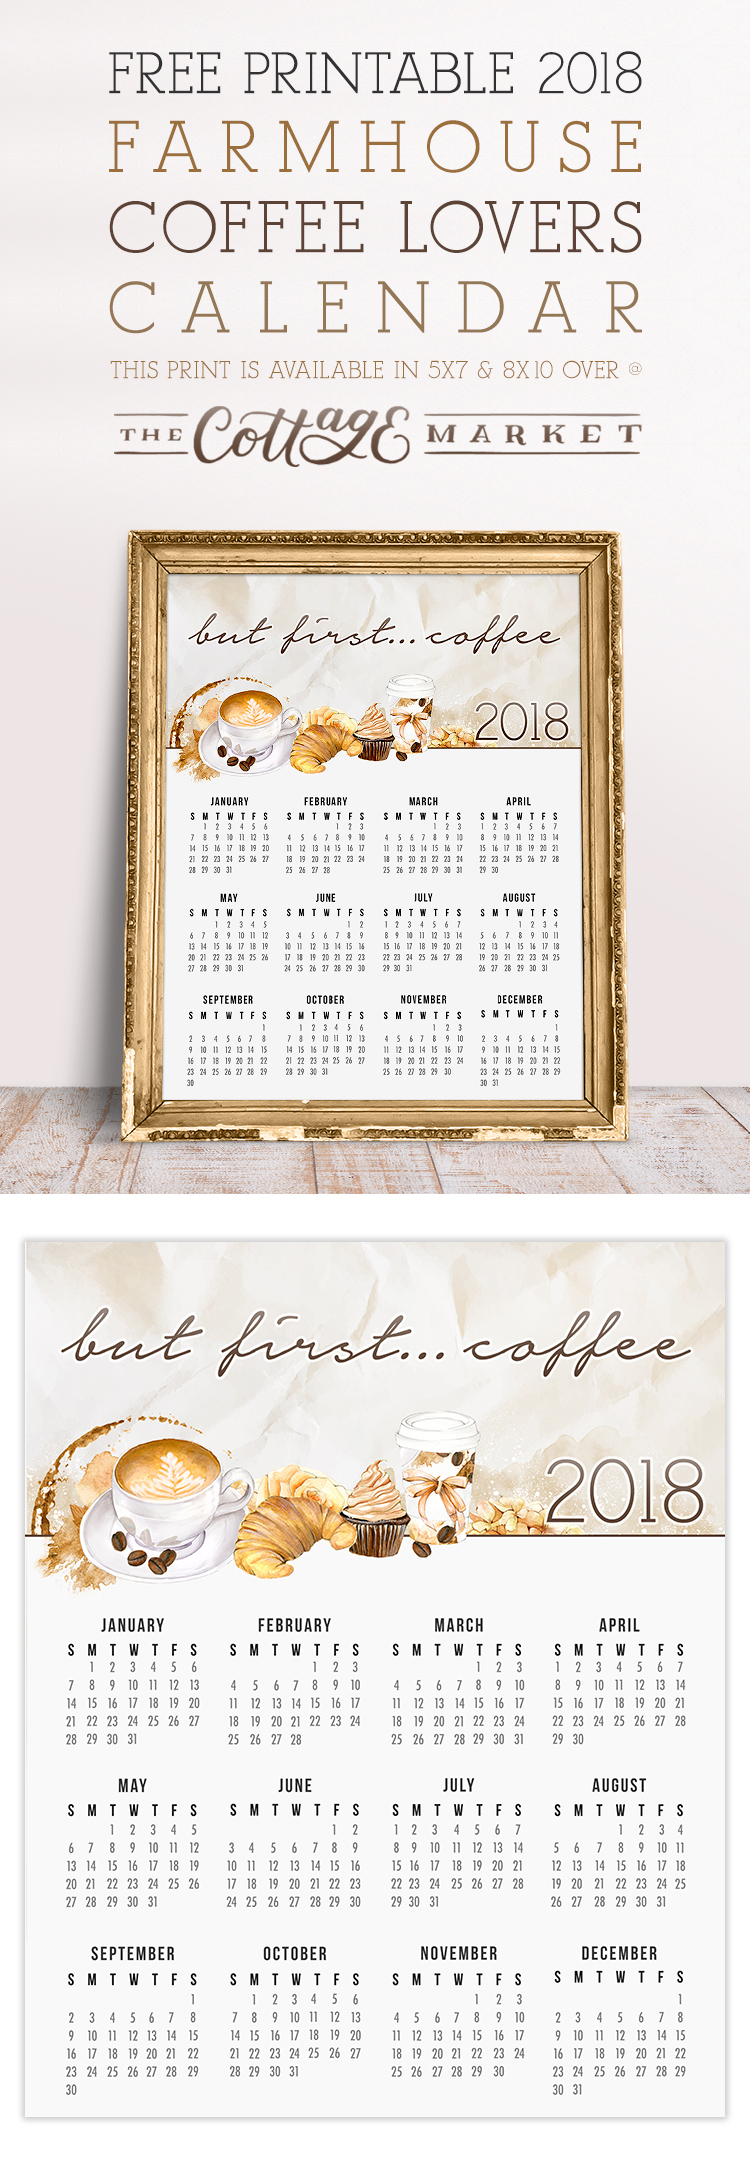 Farmhouse Coffee Lovers Calendar - 2018 Printable Calendars Collection